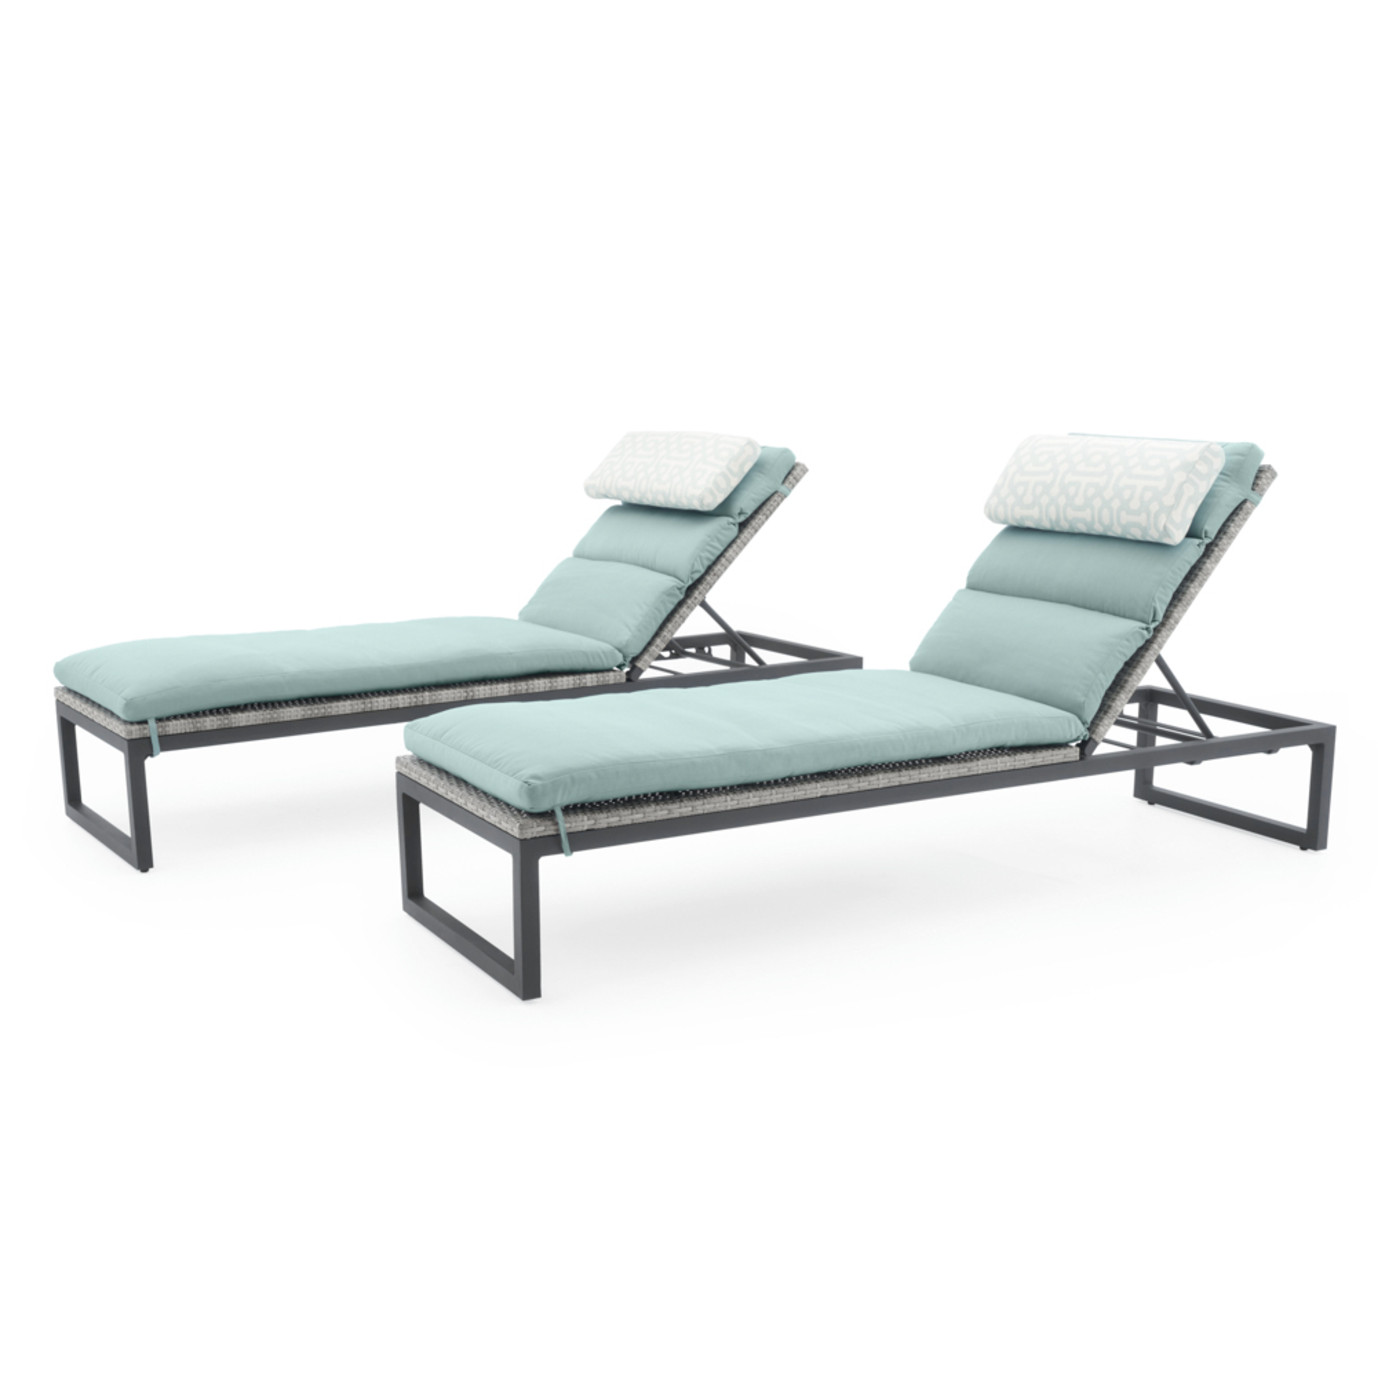 Milo™ Gray Chaise Lounges - Spa Blue